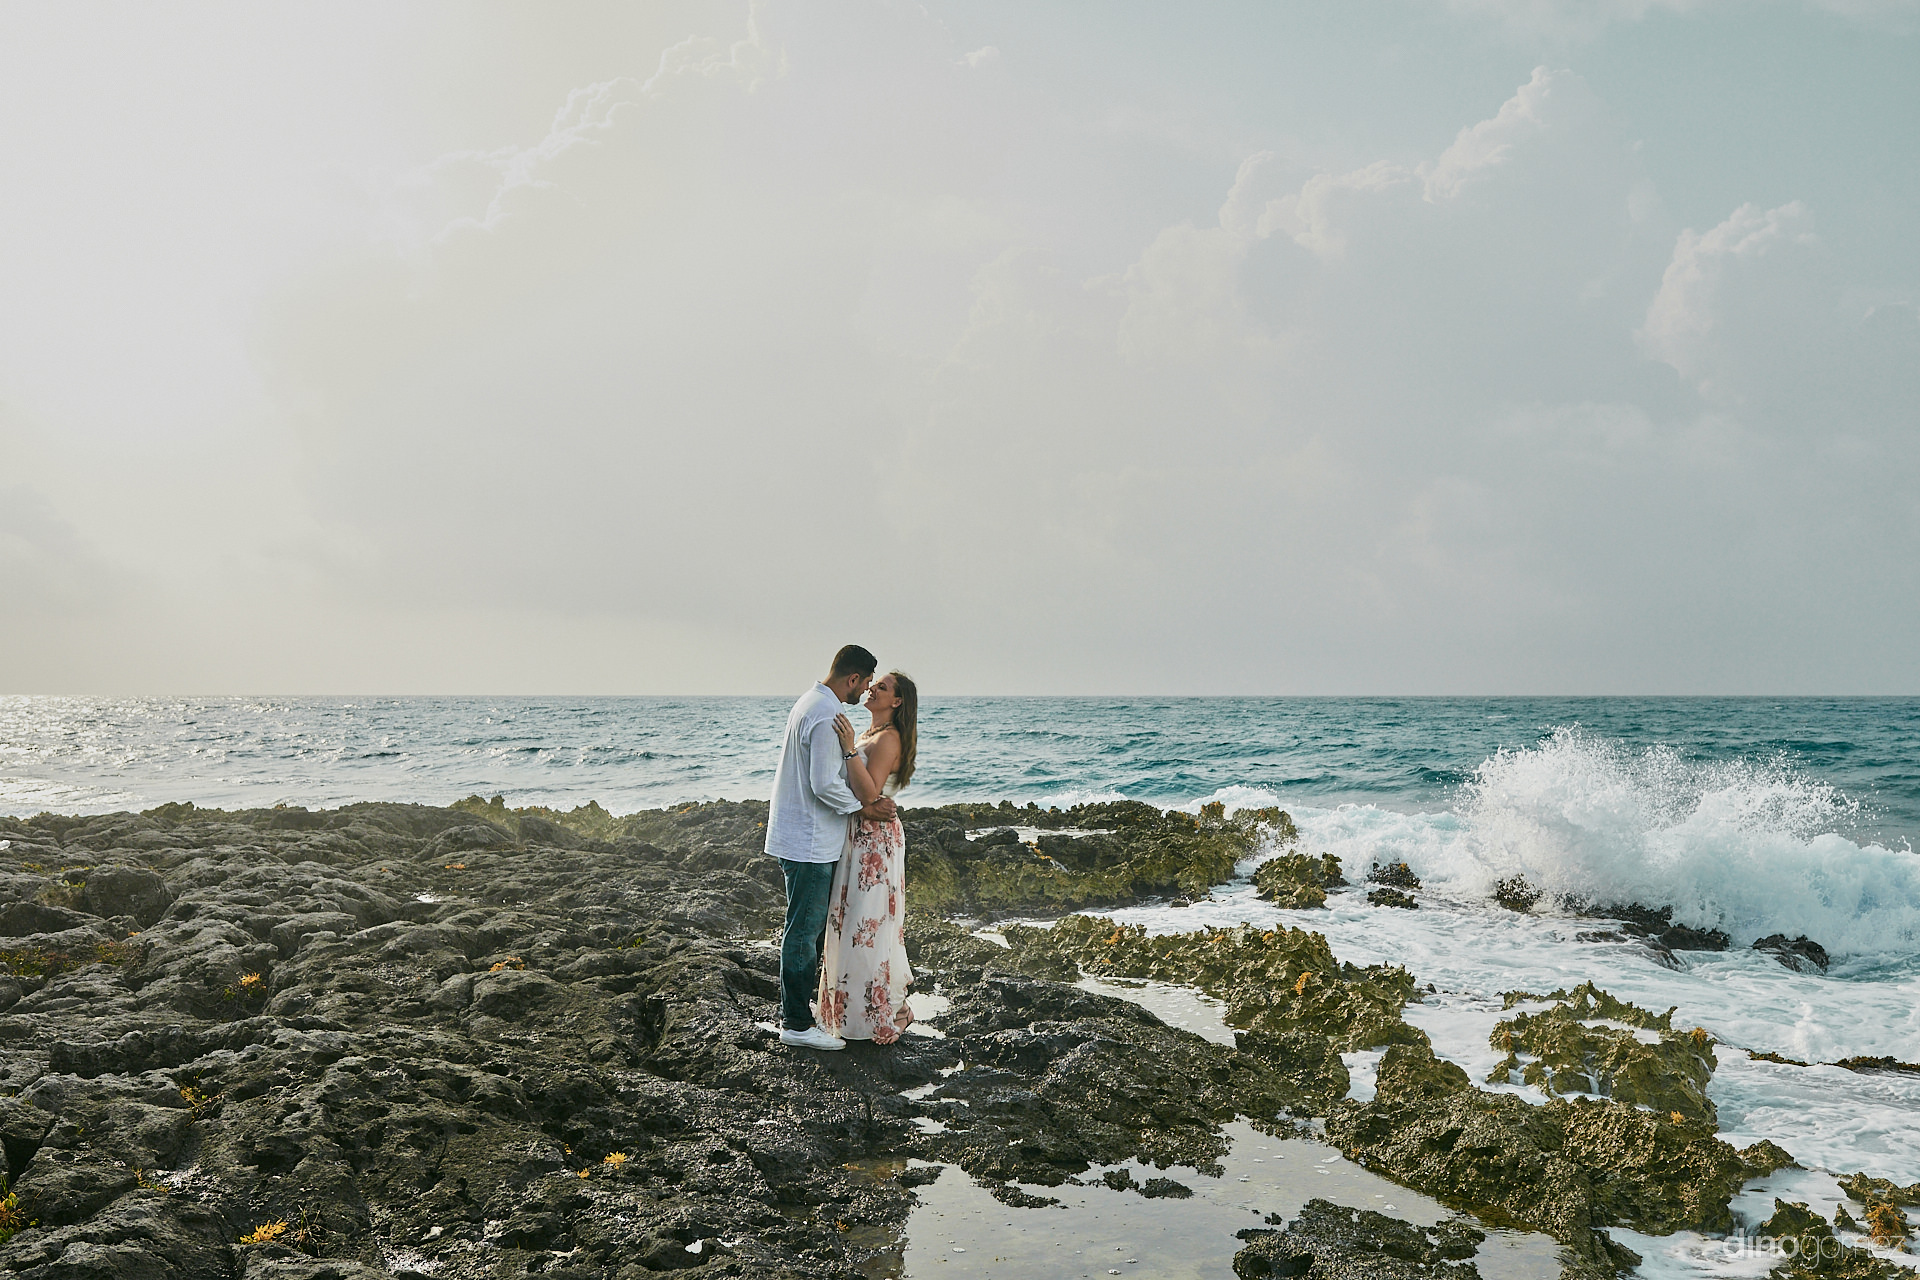 Best Wedding Photographers In Tulum - Pdc - C&D